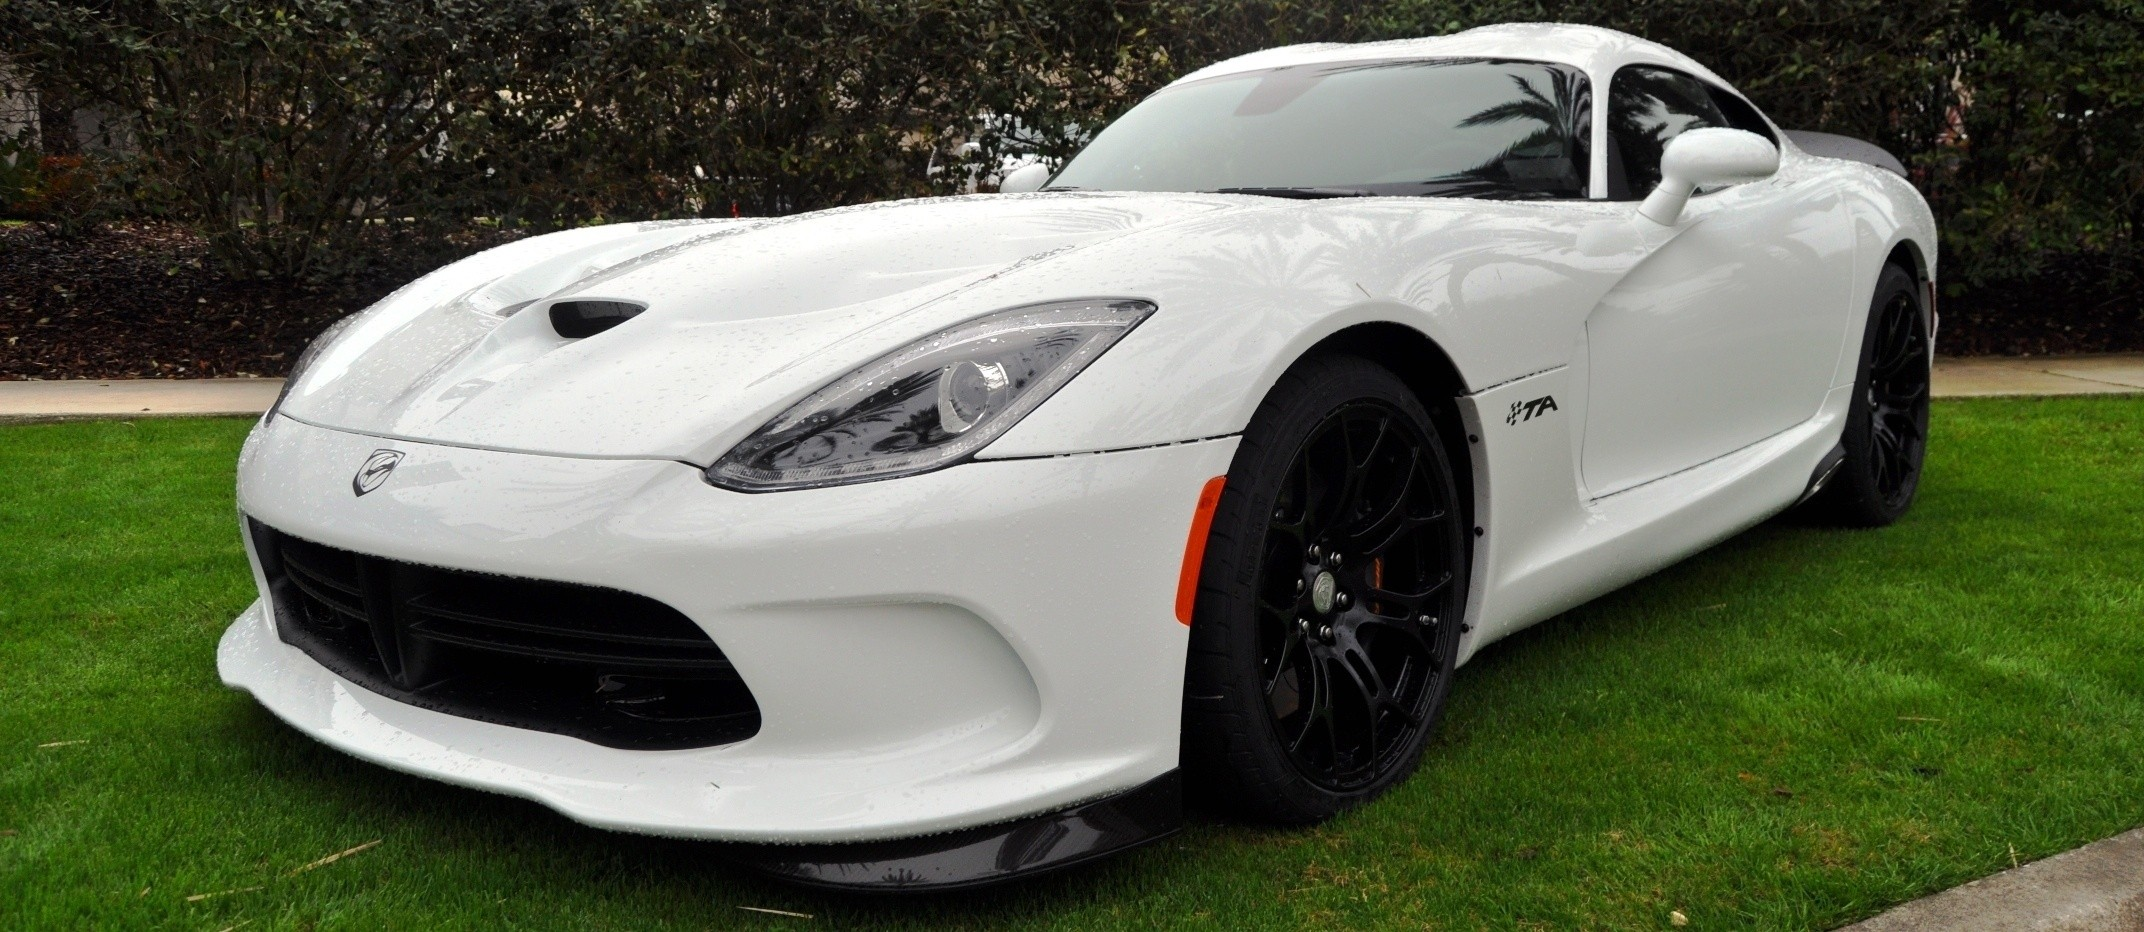 2014 SRT Viper TA in 25 All-New, Real-Life Photos with Carbon Aero Styling Options 3